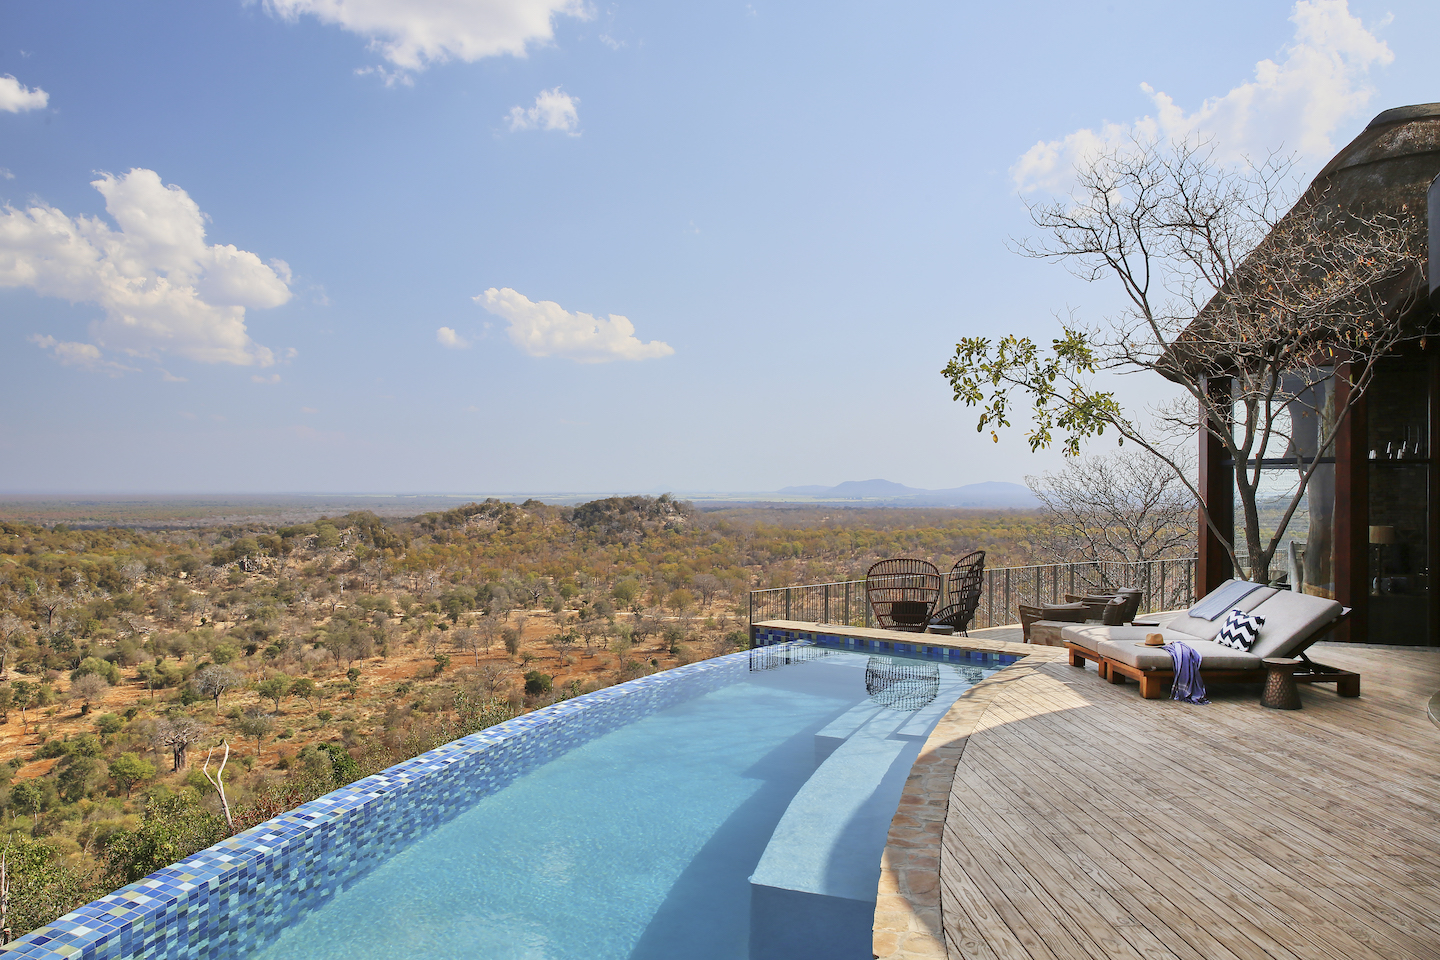 Singita-Malilangwe-House-Deck-and-pool-with-a-view Kopie